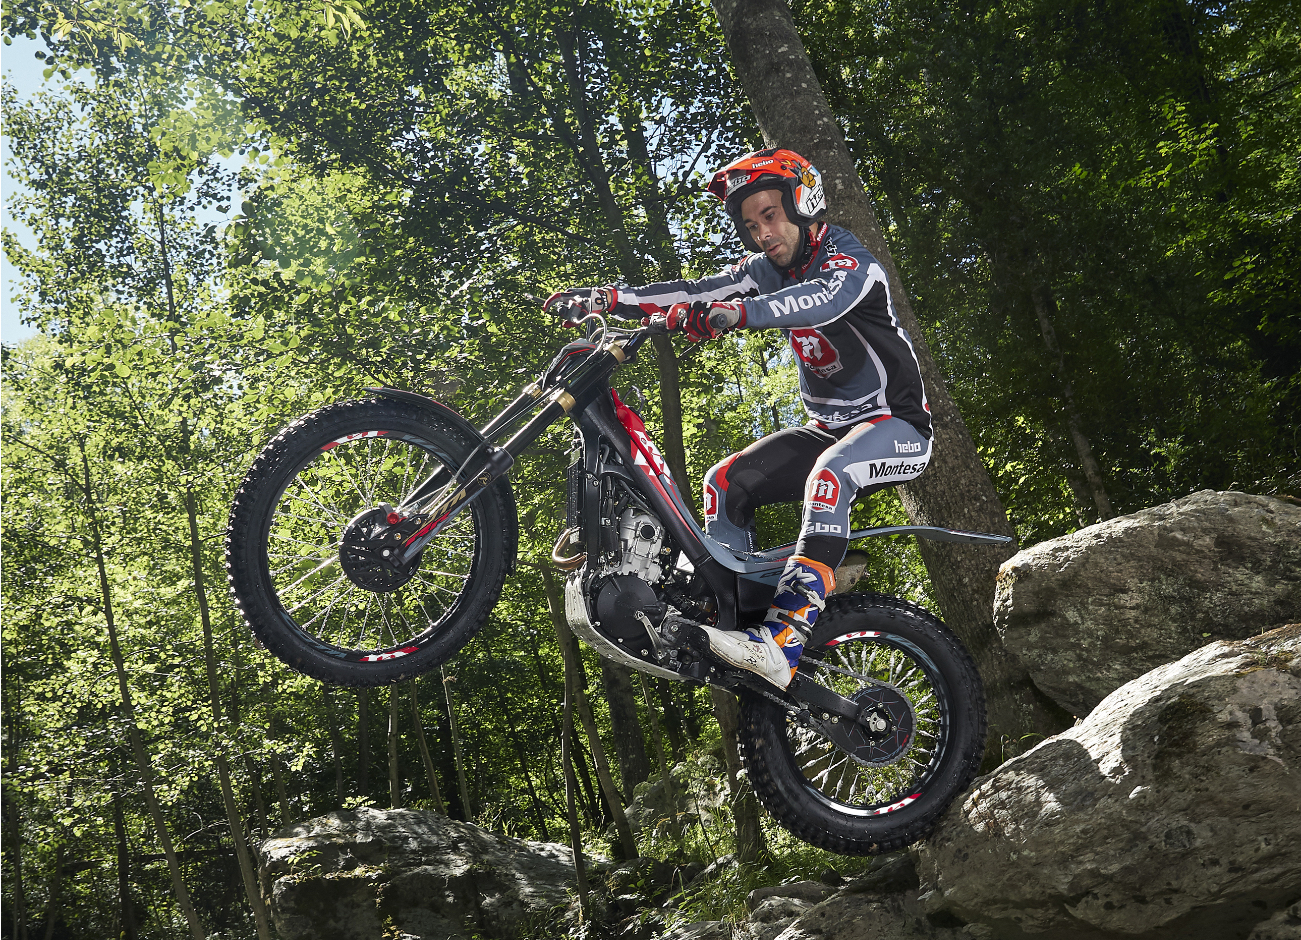 https://www.montesa.com/wp-content/uploads/2020/08/Montesa_Cota_301RT_YM2021_M0010_AH_r2.jpg